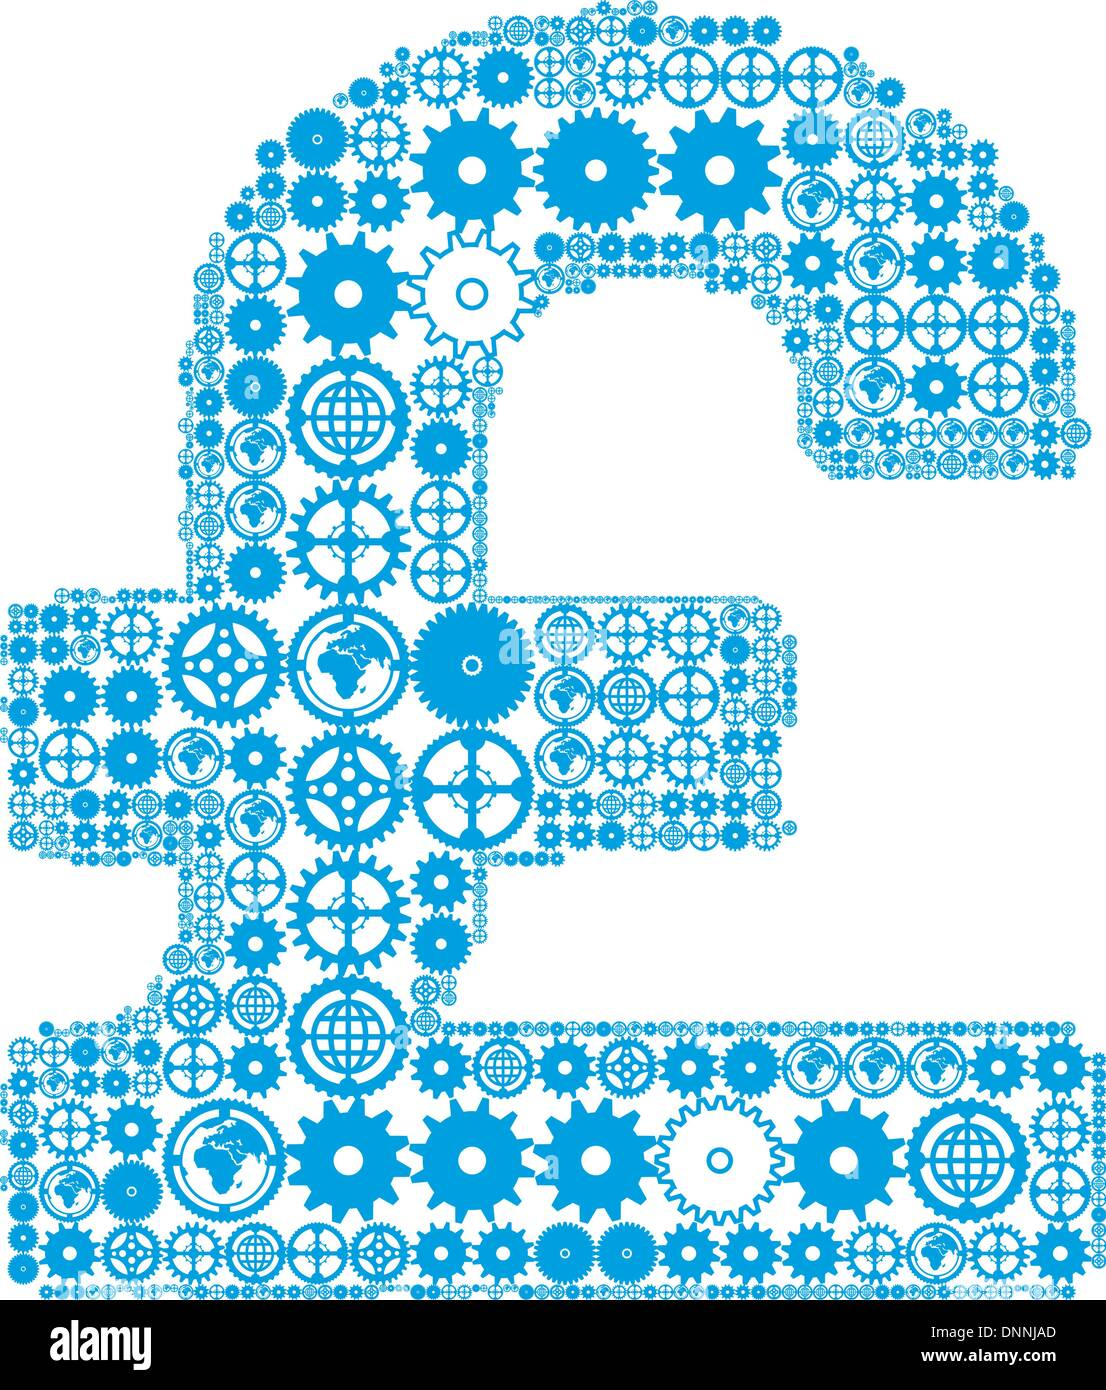 British pound sign on a white background, made of gears. Vector illustration - Stock Vector